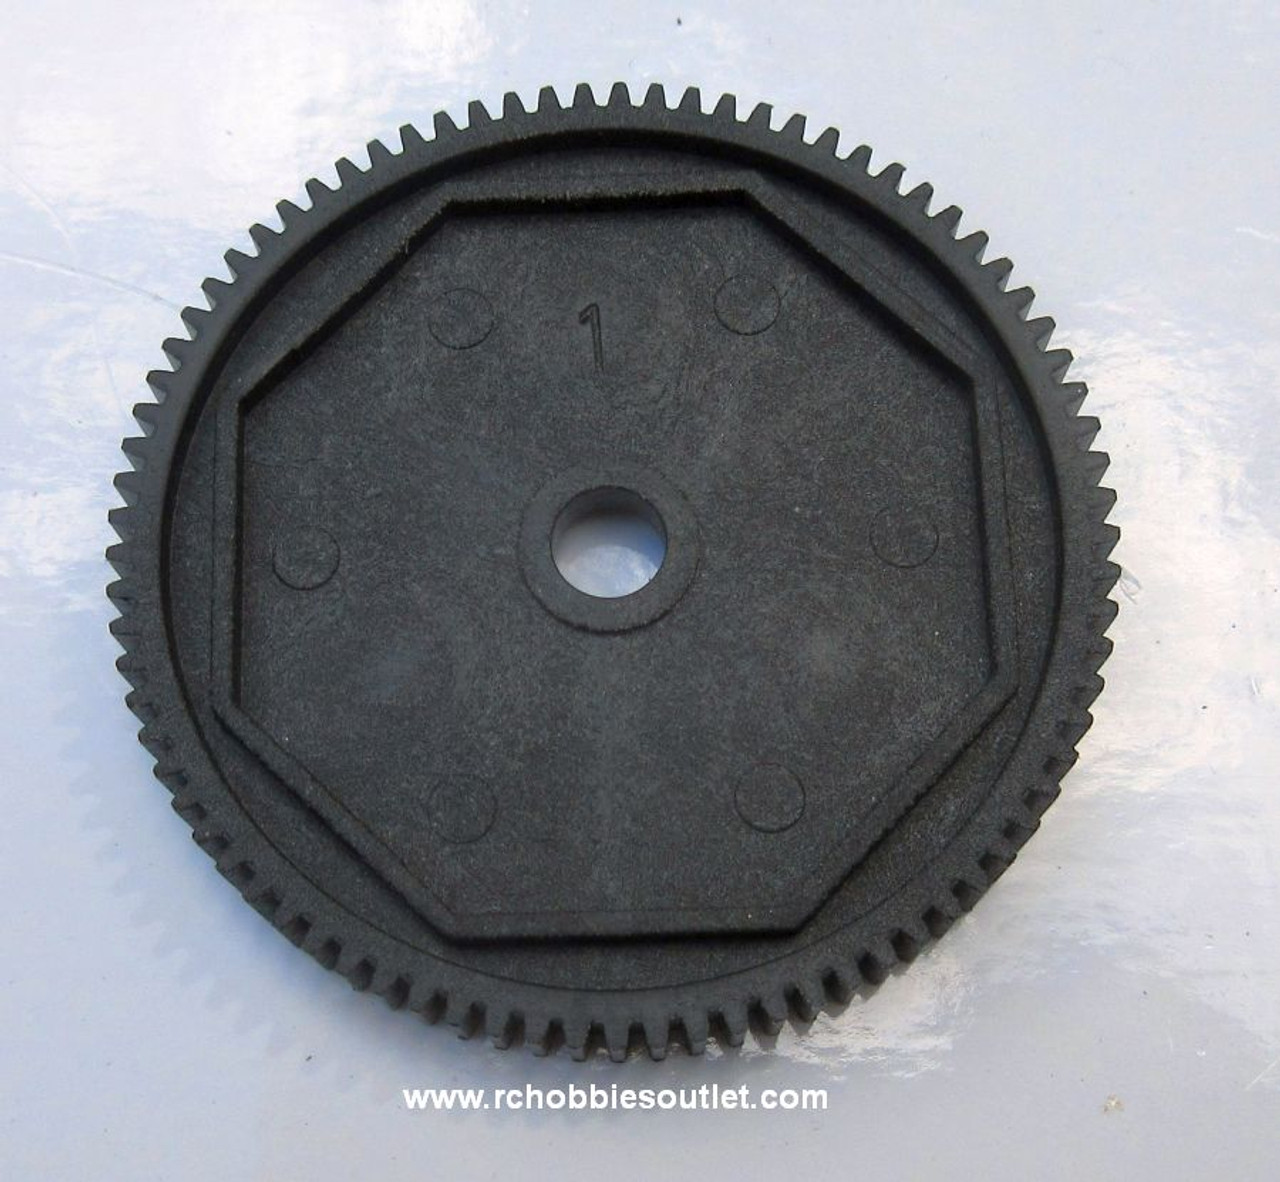 R86181 Main Gear (81T) for HSP, Redcat